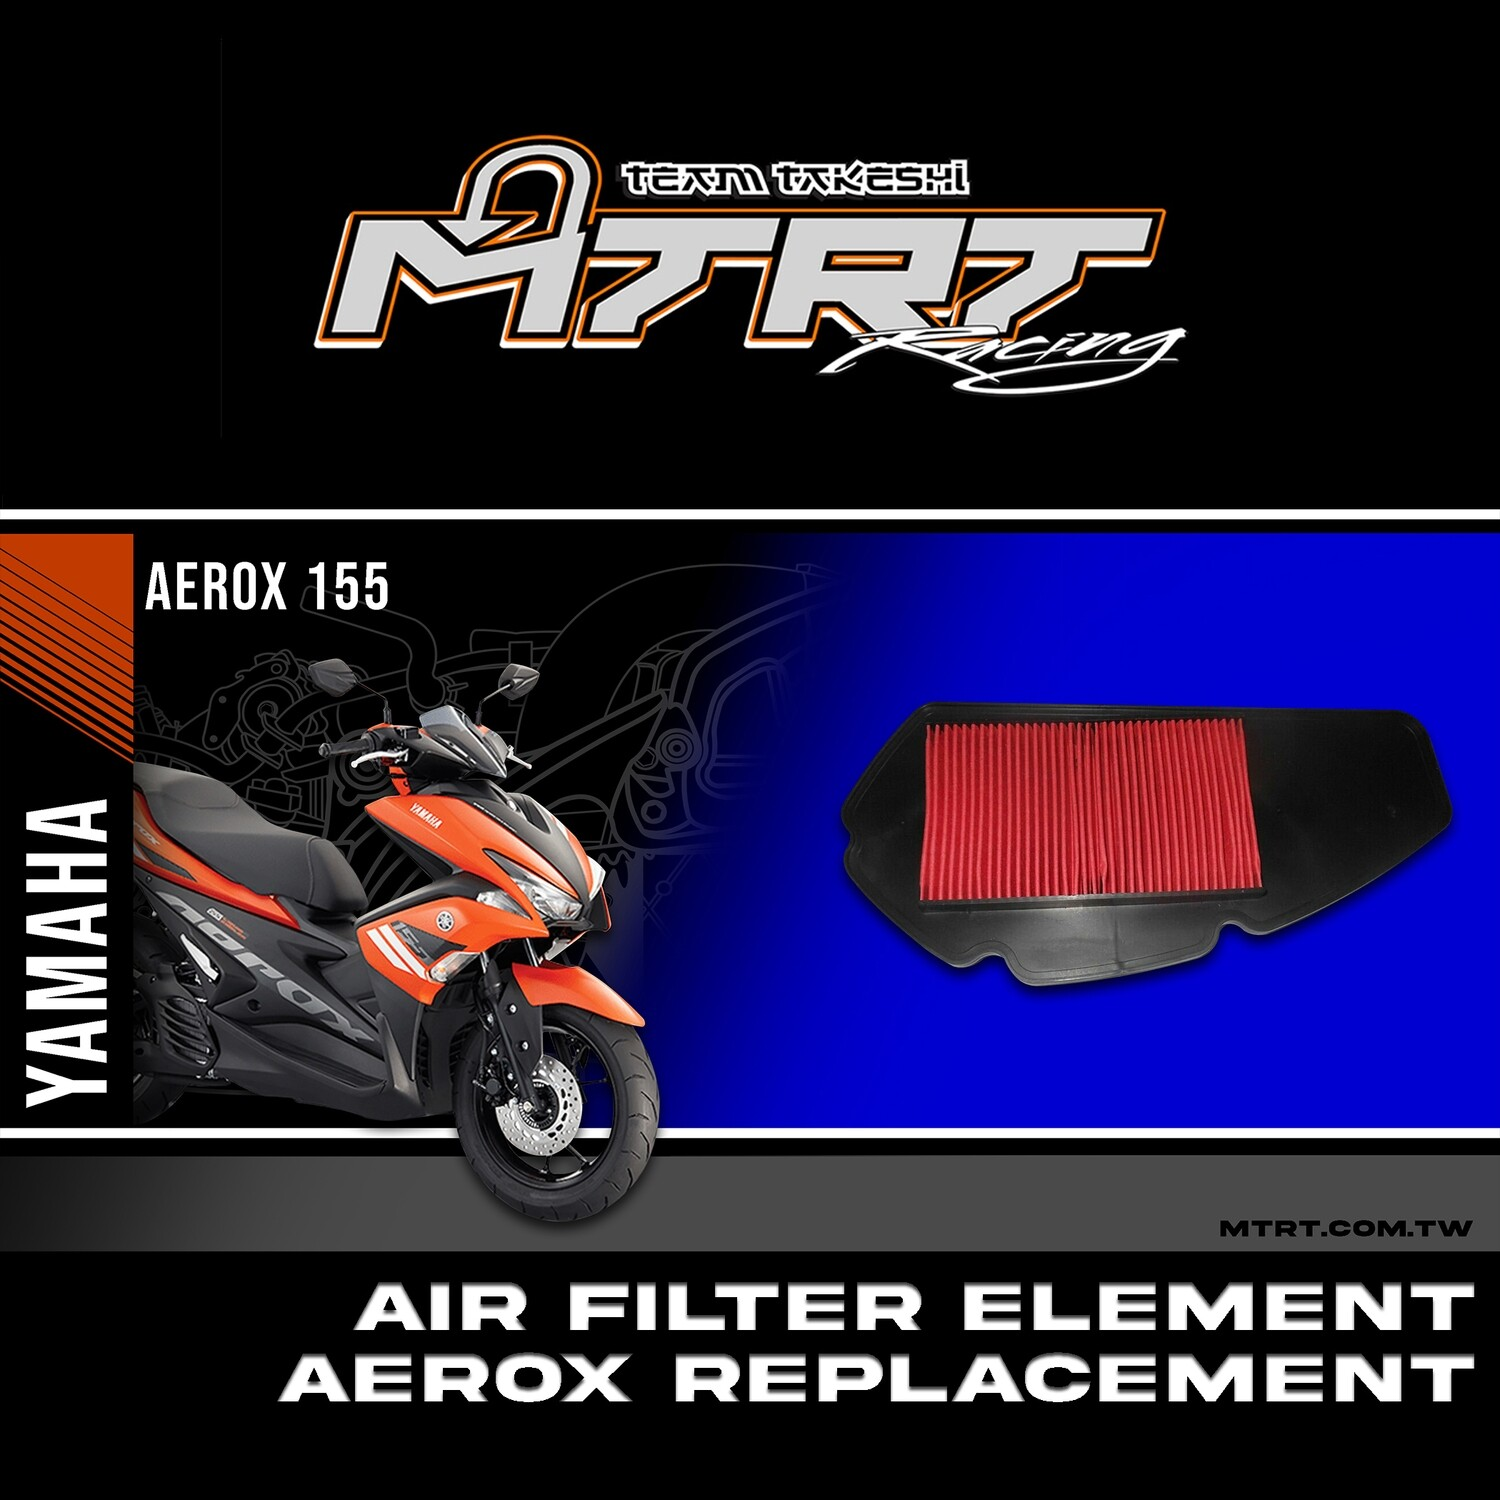 AIR FILTER ELEMENT for AEROX